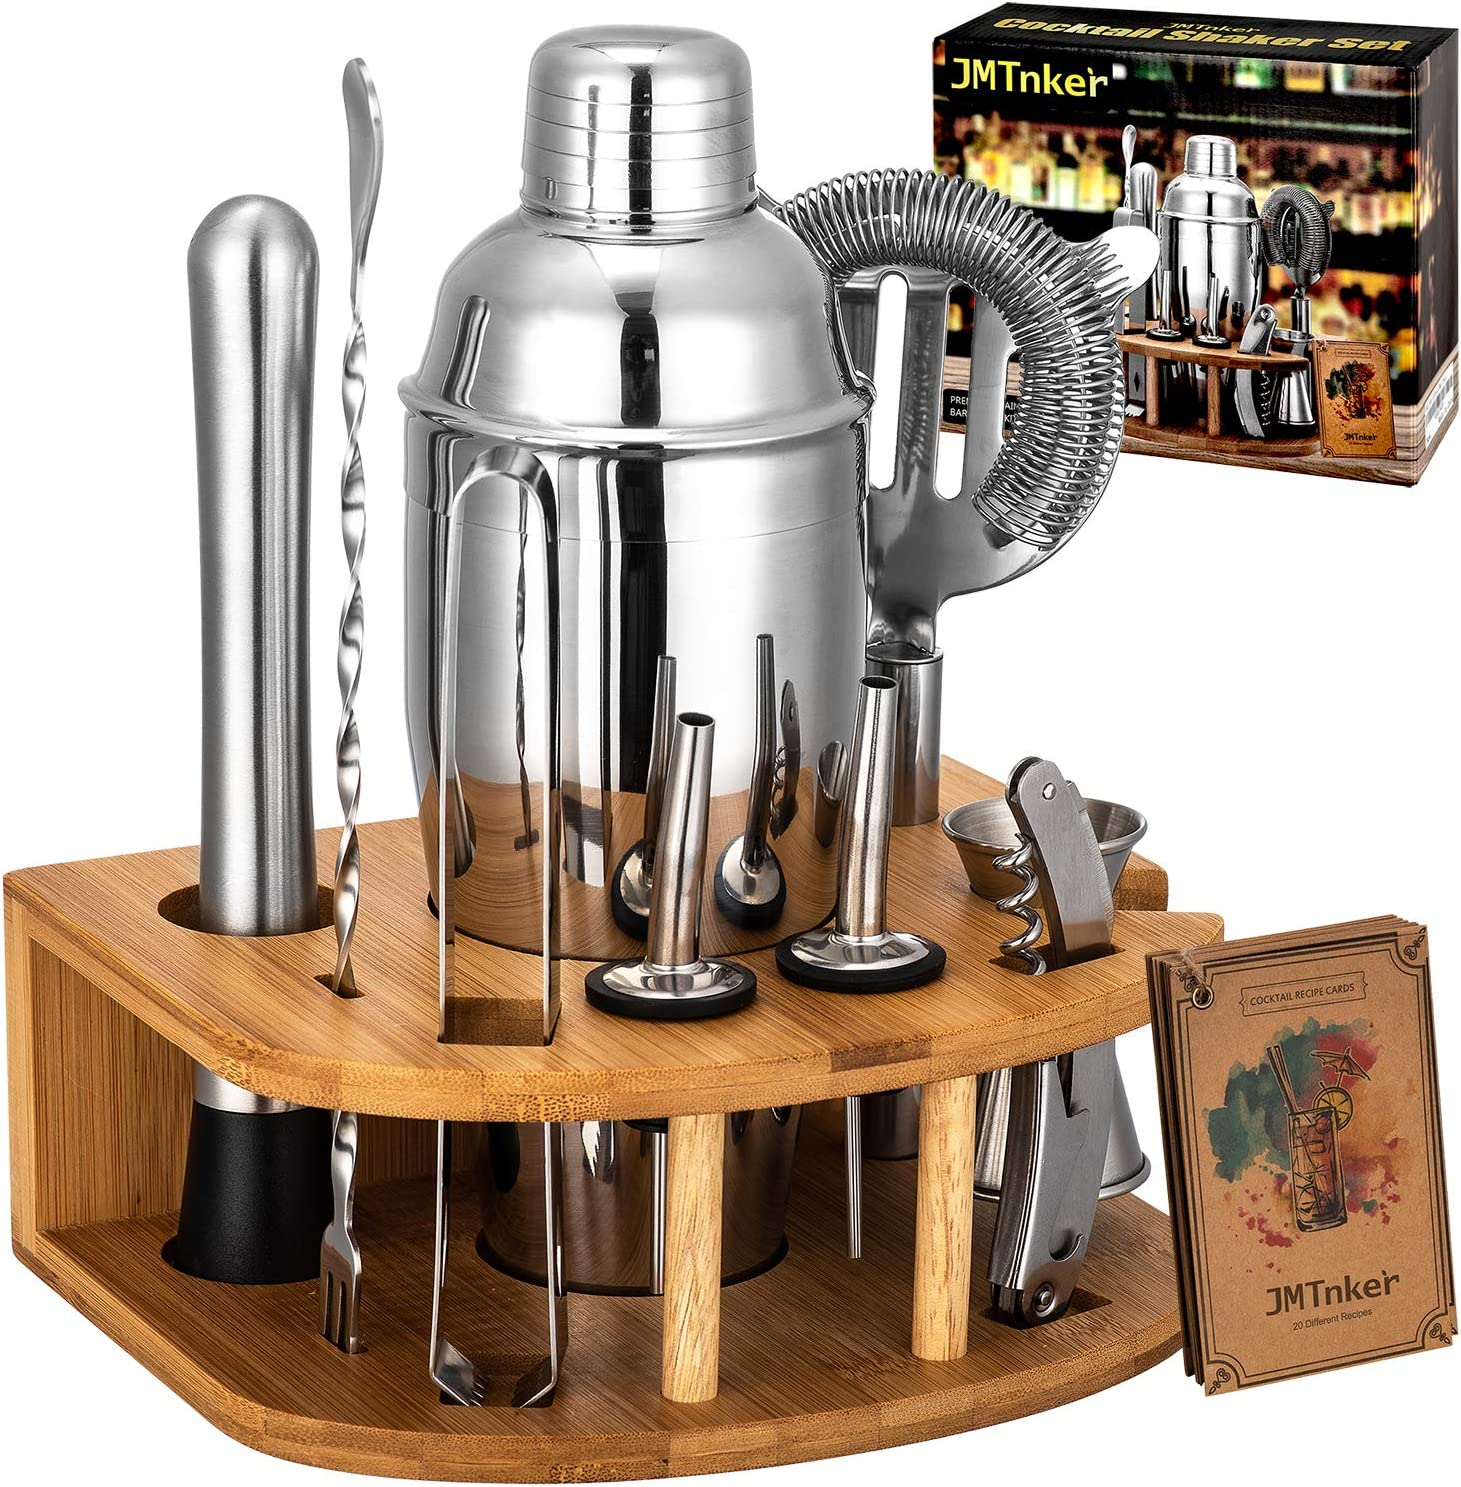 Tongs Corkscrew Cocktail Shaker Set with Stand Perfect Bartender Kit for Home and Bar-Bar Tools set: 24oz Martini Shaker Strainer Muddler Recipes Cards Jigger Mixer Spoon 2 Liquor Pourers